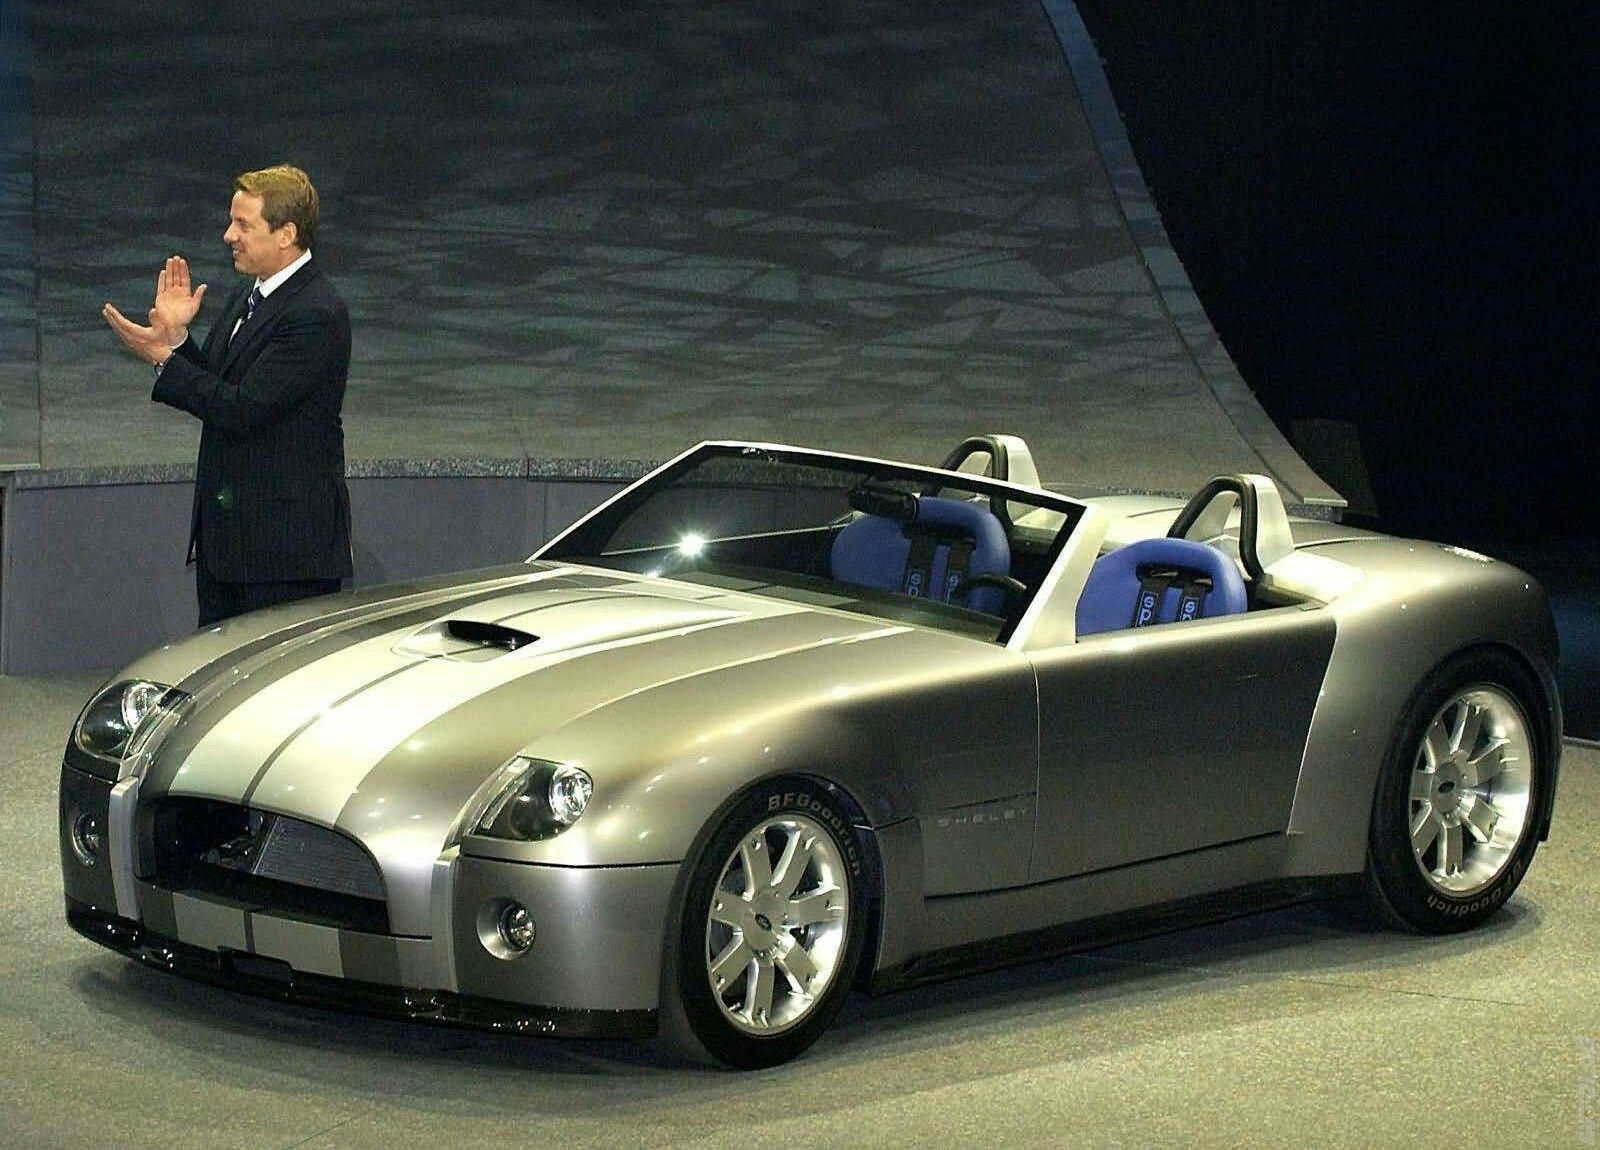 Ford Shelby Cobra Concept Ford Shelby Cobra Shelby Cobra Ford Shelby